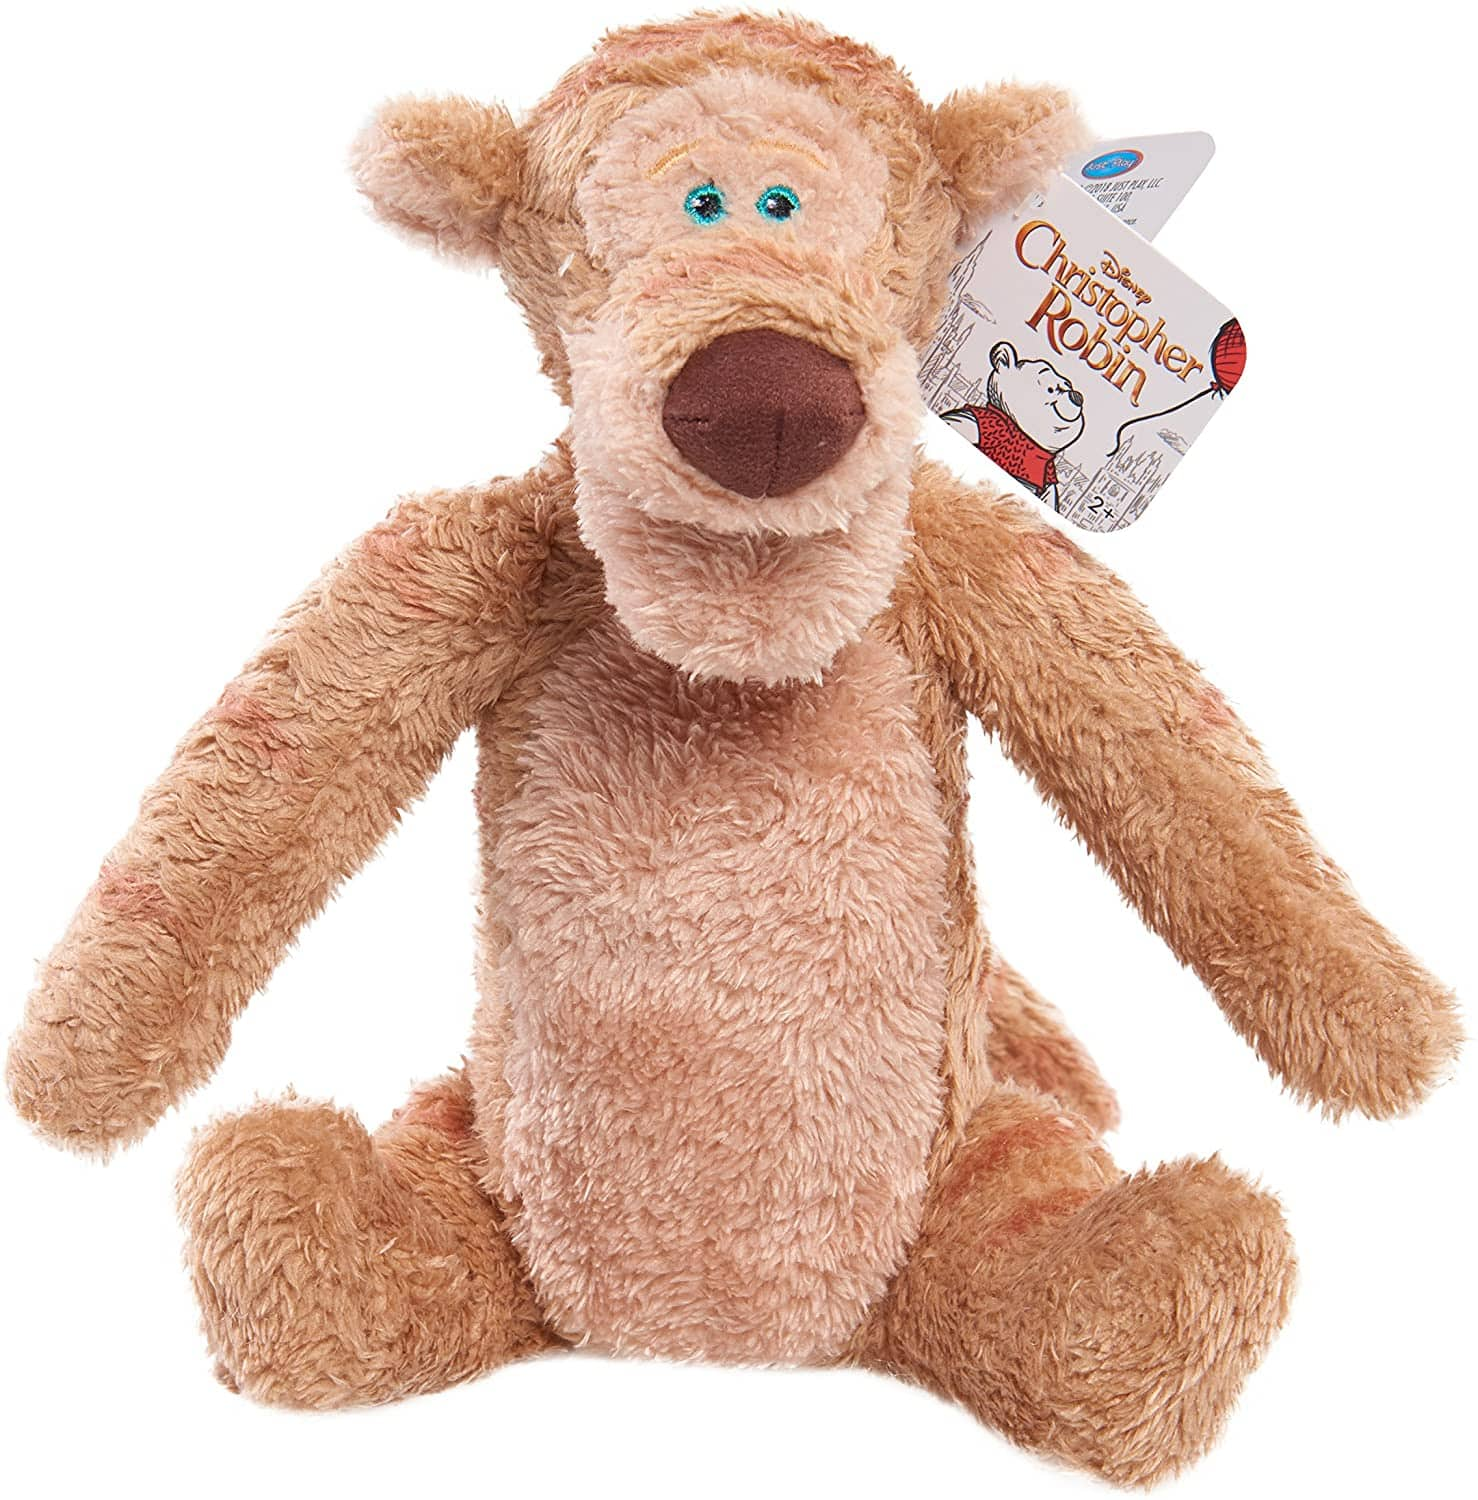 """8"""" Christopher Robin Friends Plush Tigger $4.40, 10"""" Disney Minnie Mouse Oh So Chic Sweet Latte Doll $8.35, More + Free Shipping w/ Prime or on $25+"""